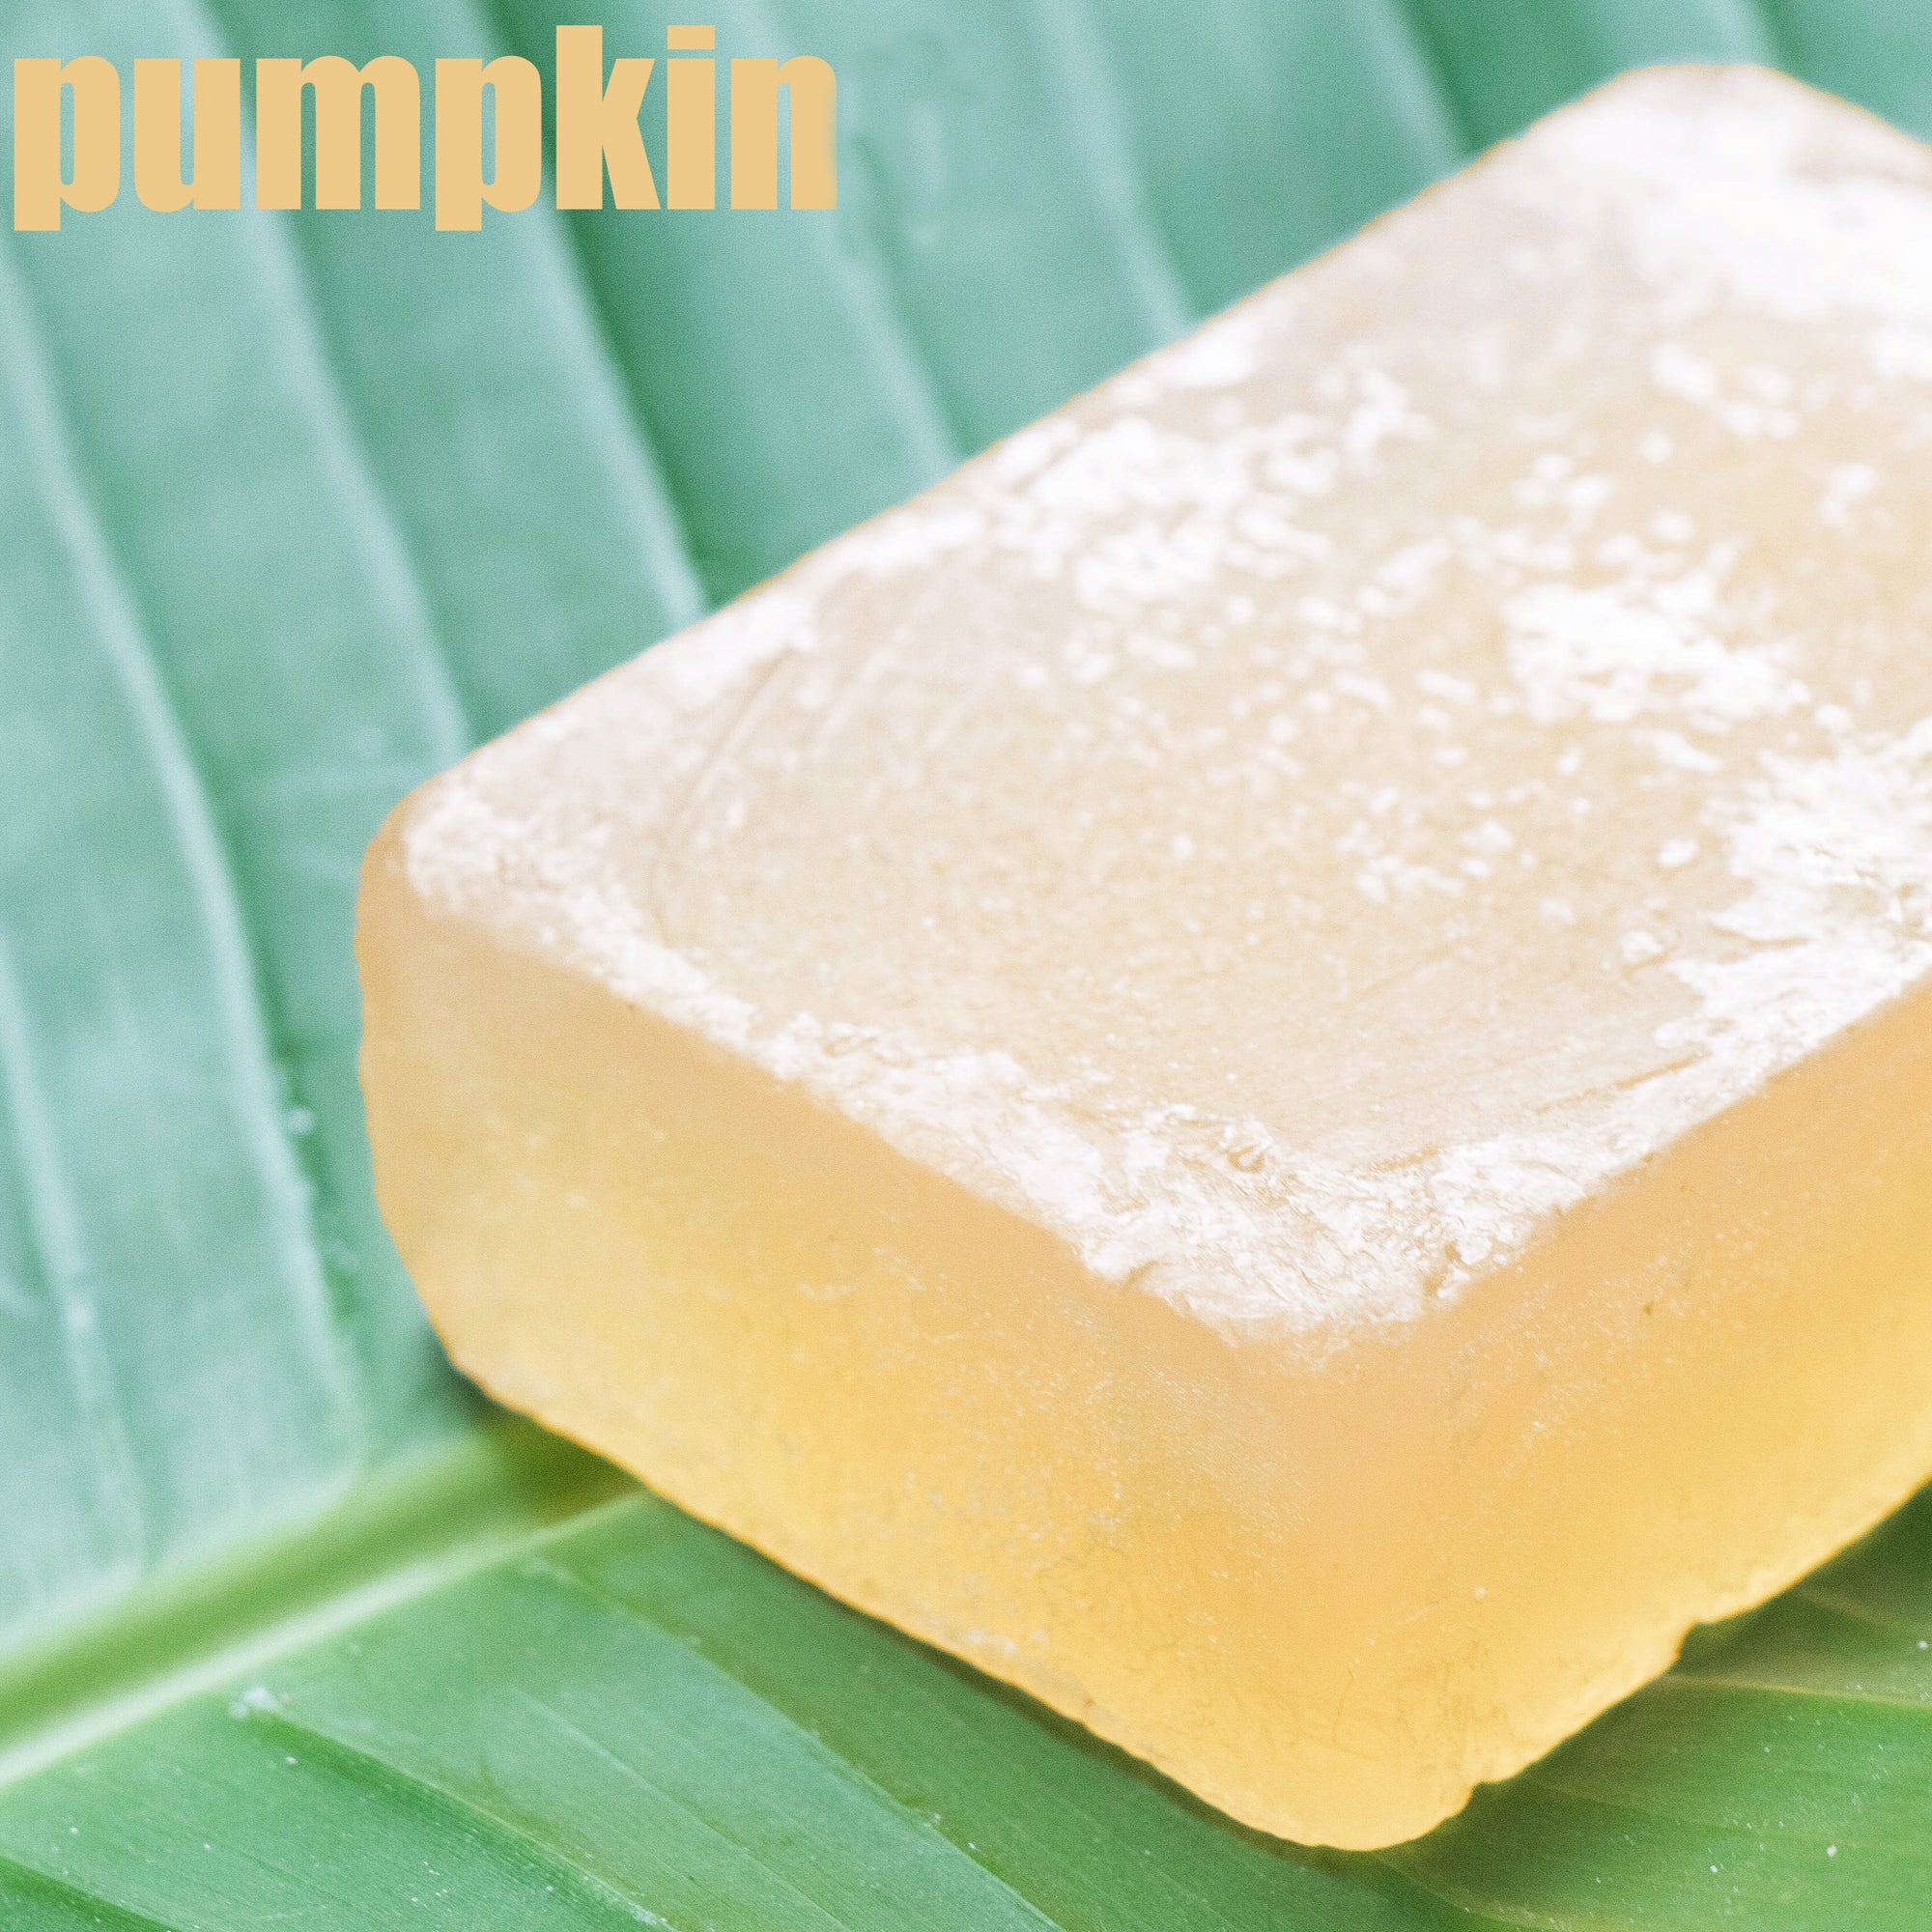 Pumpkin - Natural Handmade Soap 100 gms